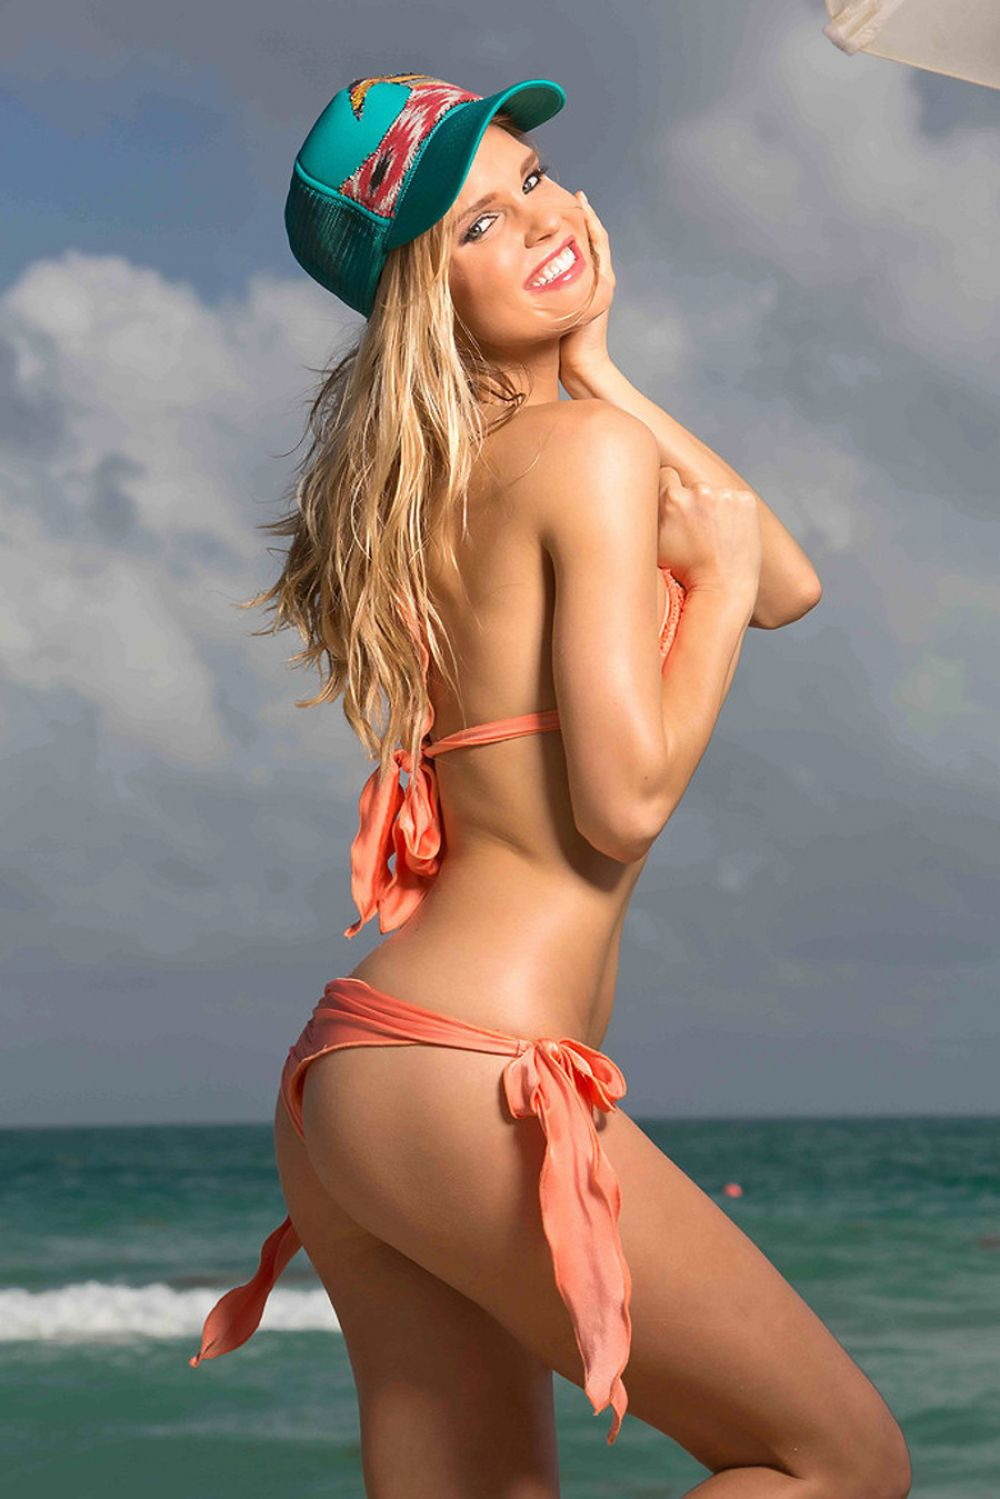 joy-corringan-summerlove-swimwear-2014-collection_18.jpg - 125.08 KB